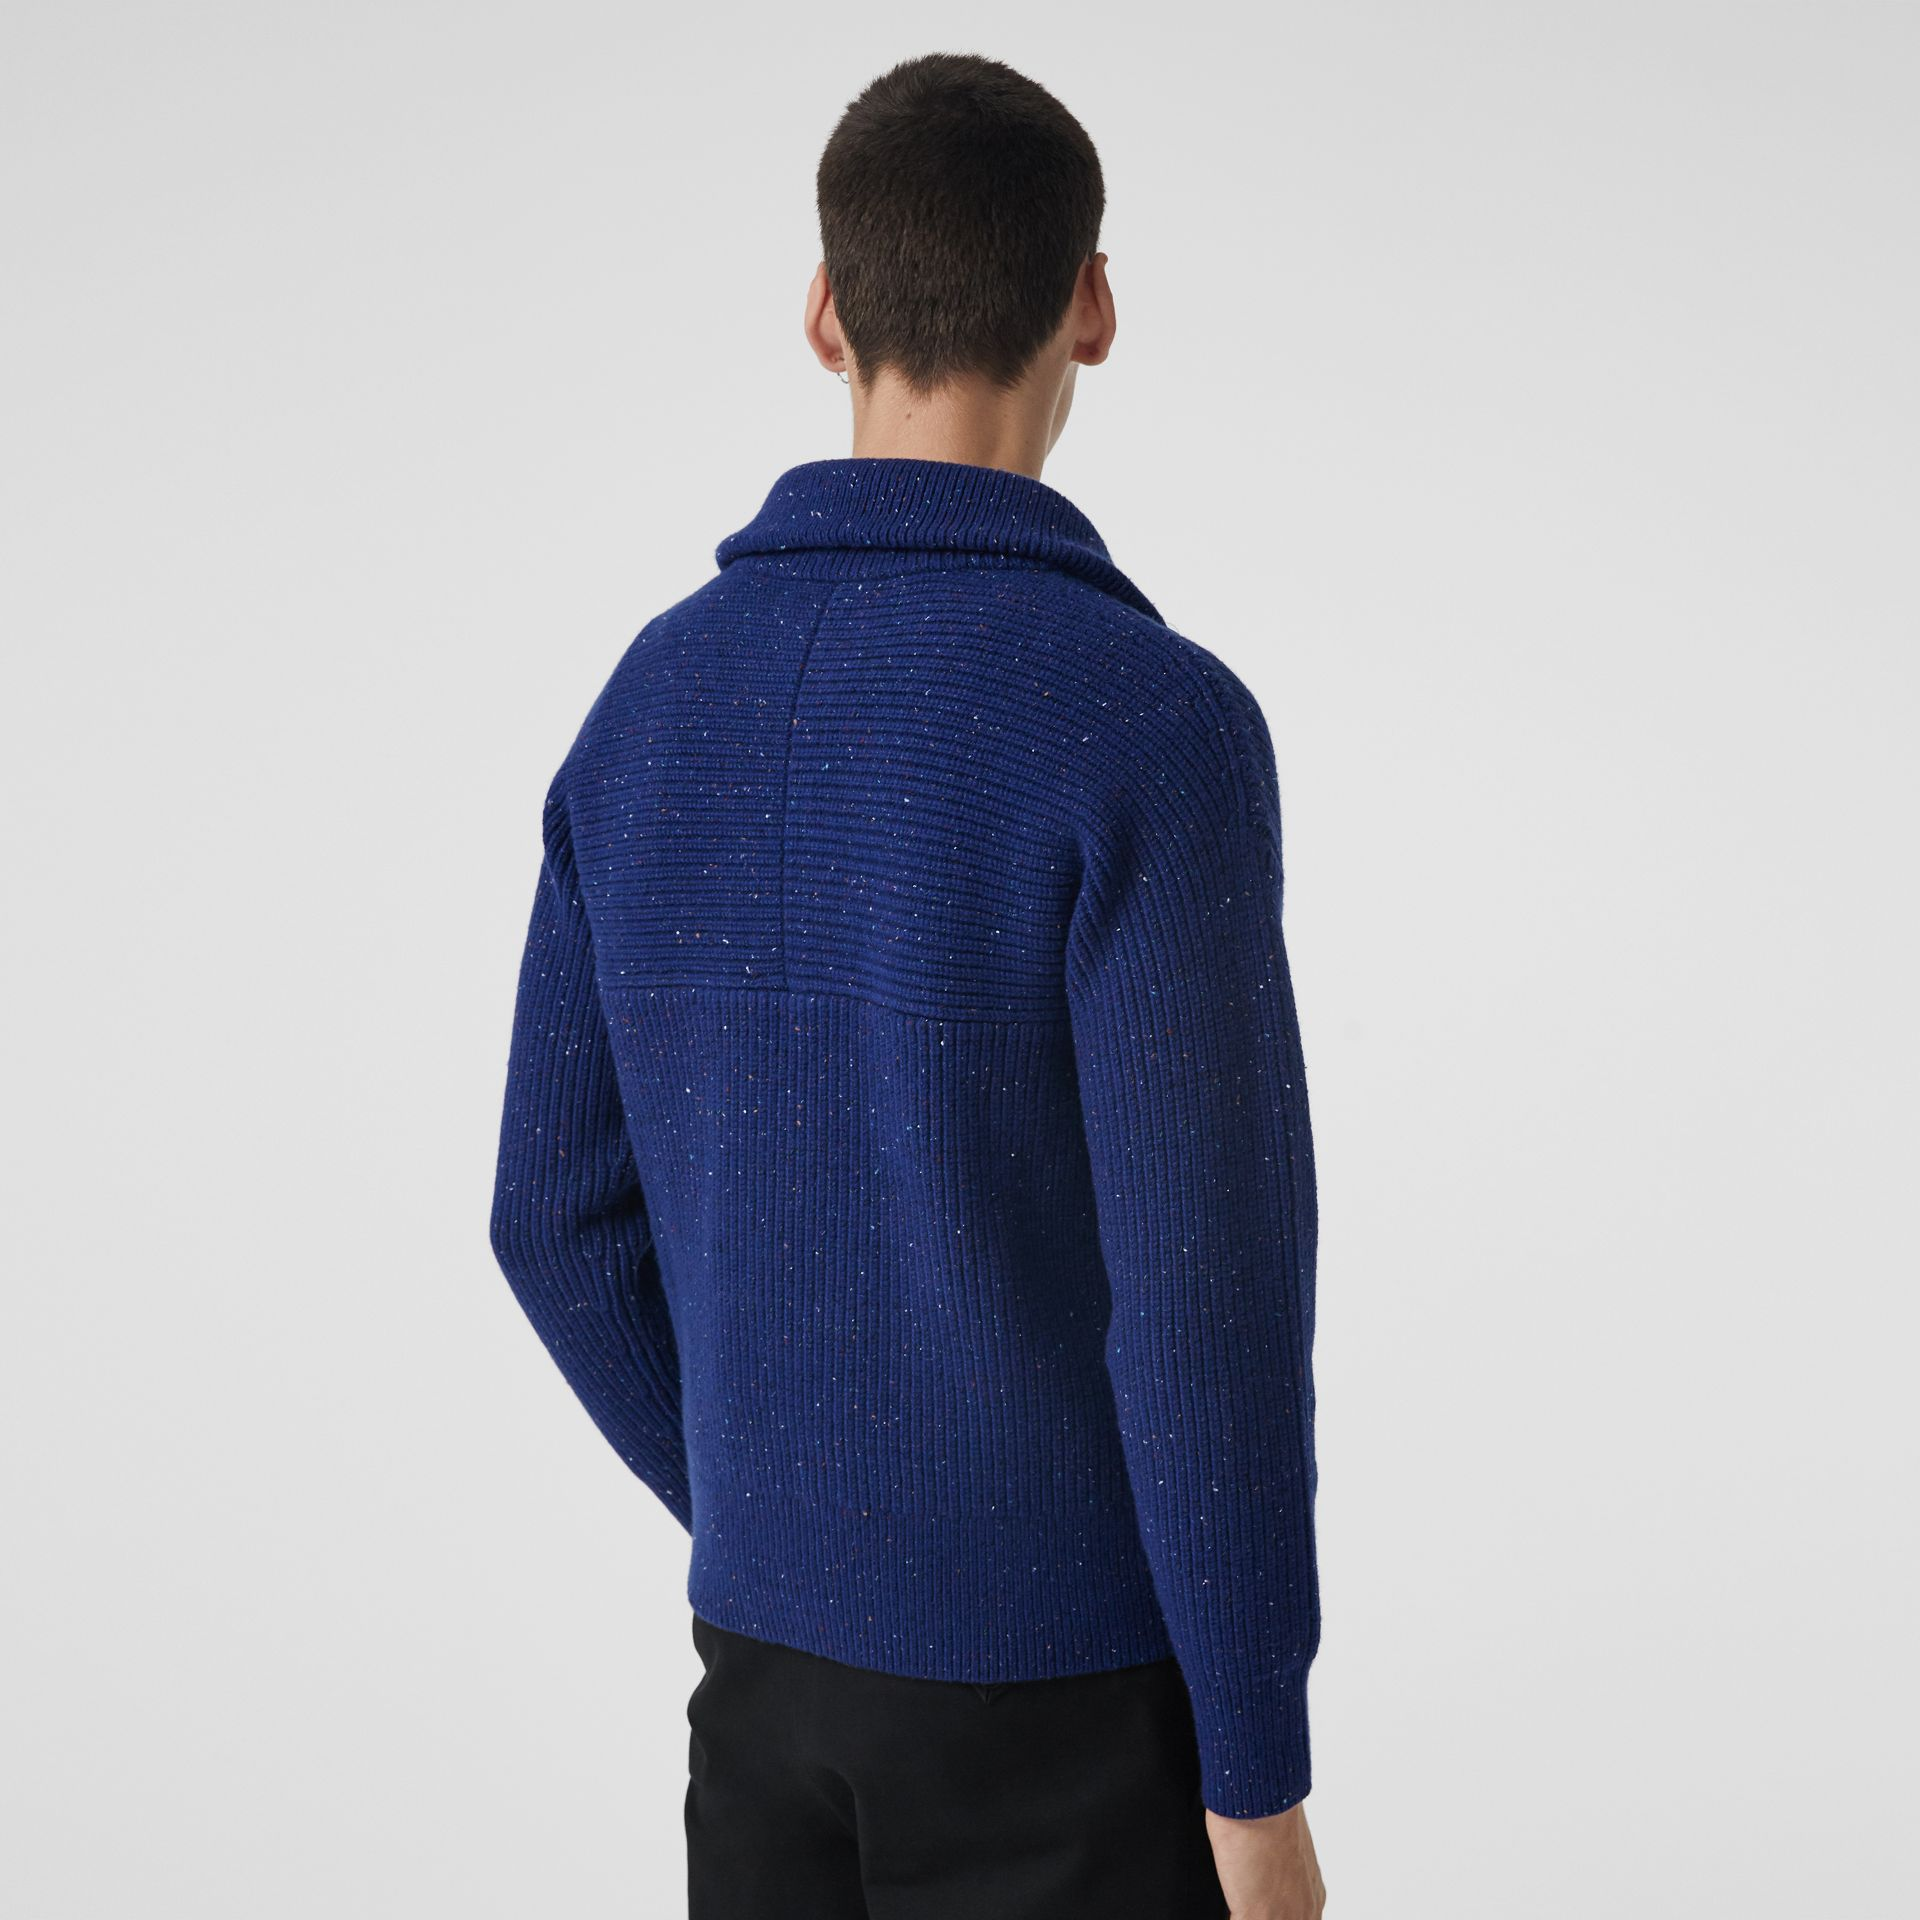 Rib Knit Wool Cashmere Blend Half-zip Sweater in Navy - Men | Burberry - gallery image 2